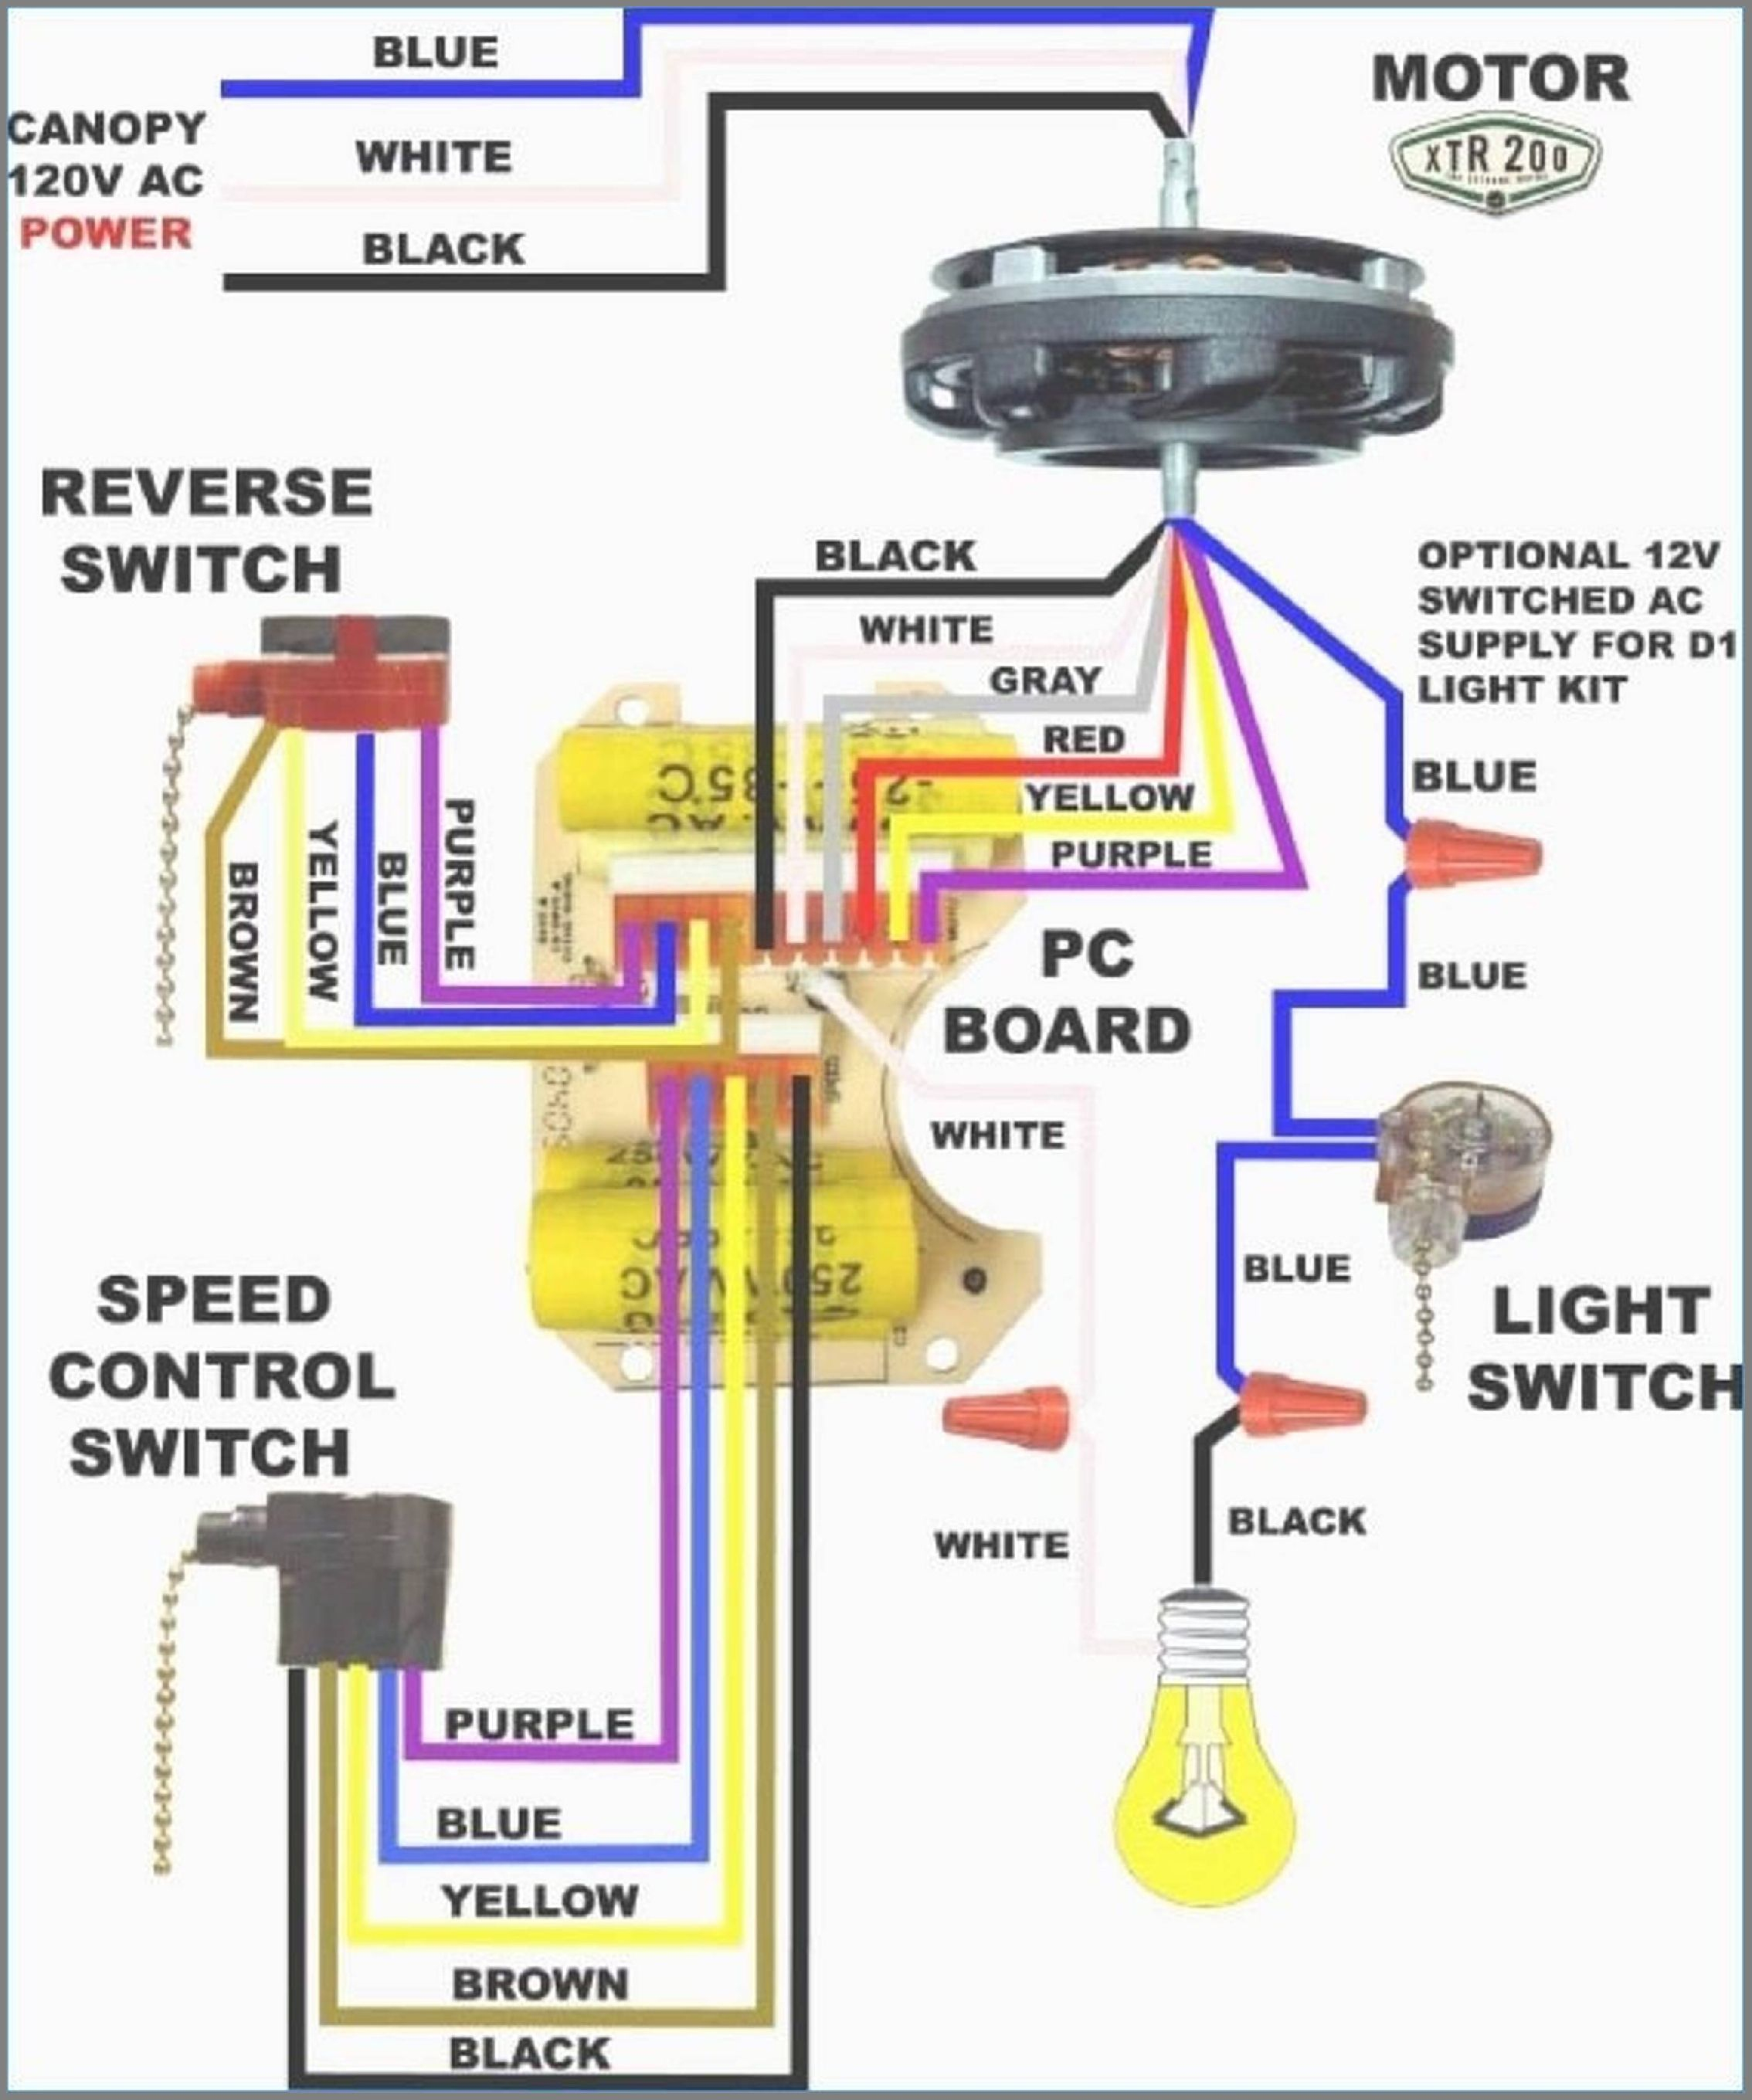 4 Wire Harbor Breeze 3 Speed Ceiling Fan Switch With Capacitor - Hunter Ceiling Fan Switch Wiring Diagram